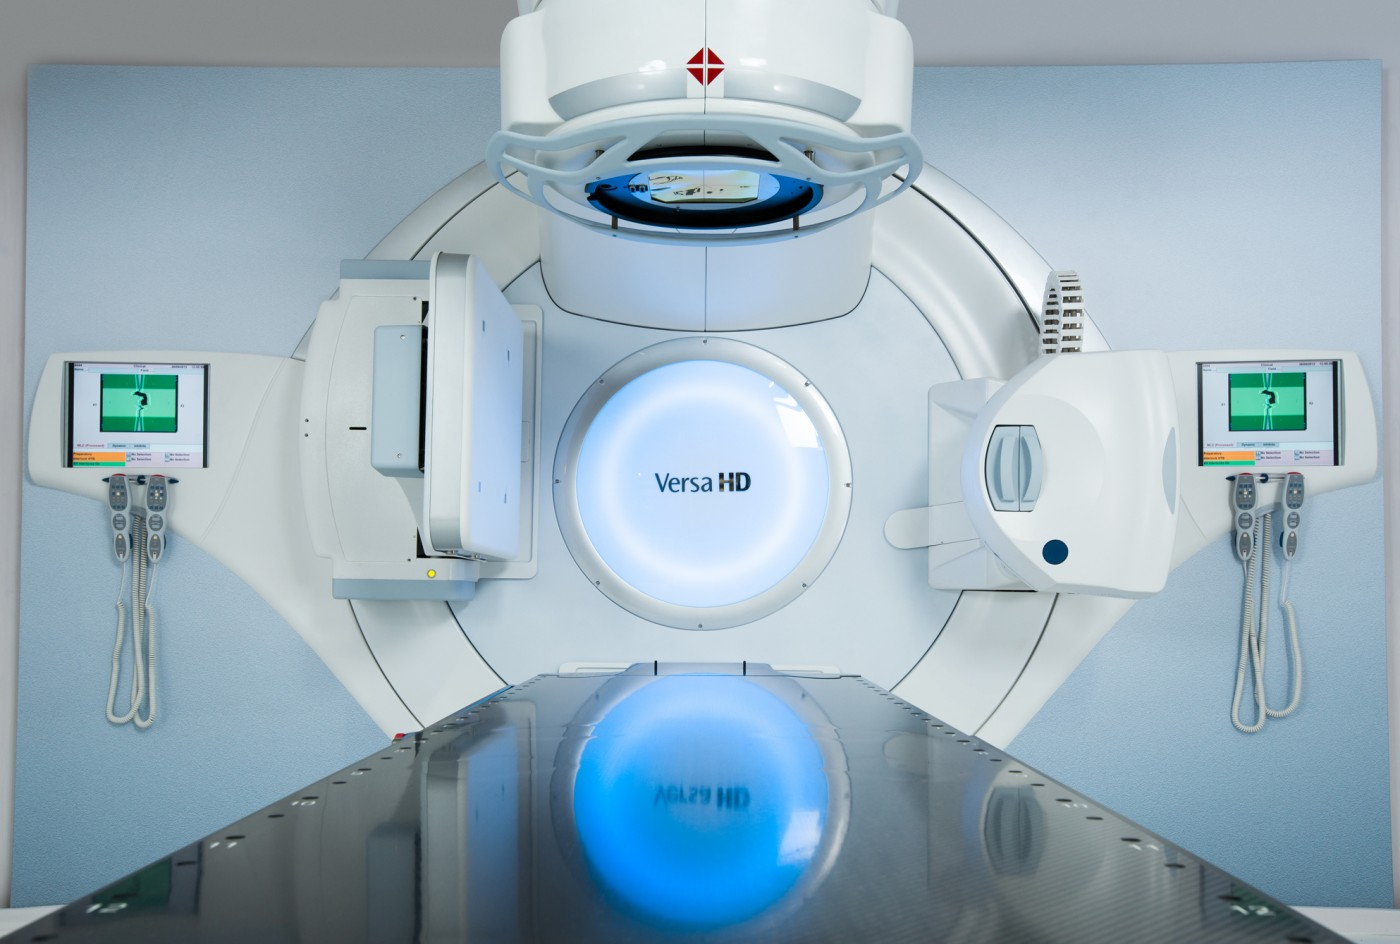 China Approves Elekta's Versa HD Linear Accelerator